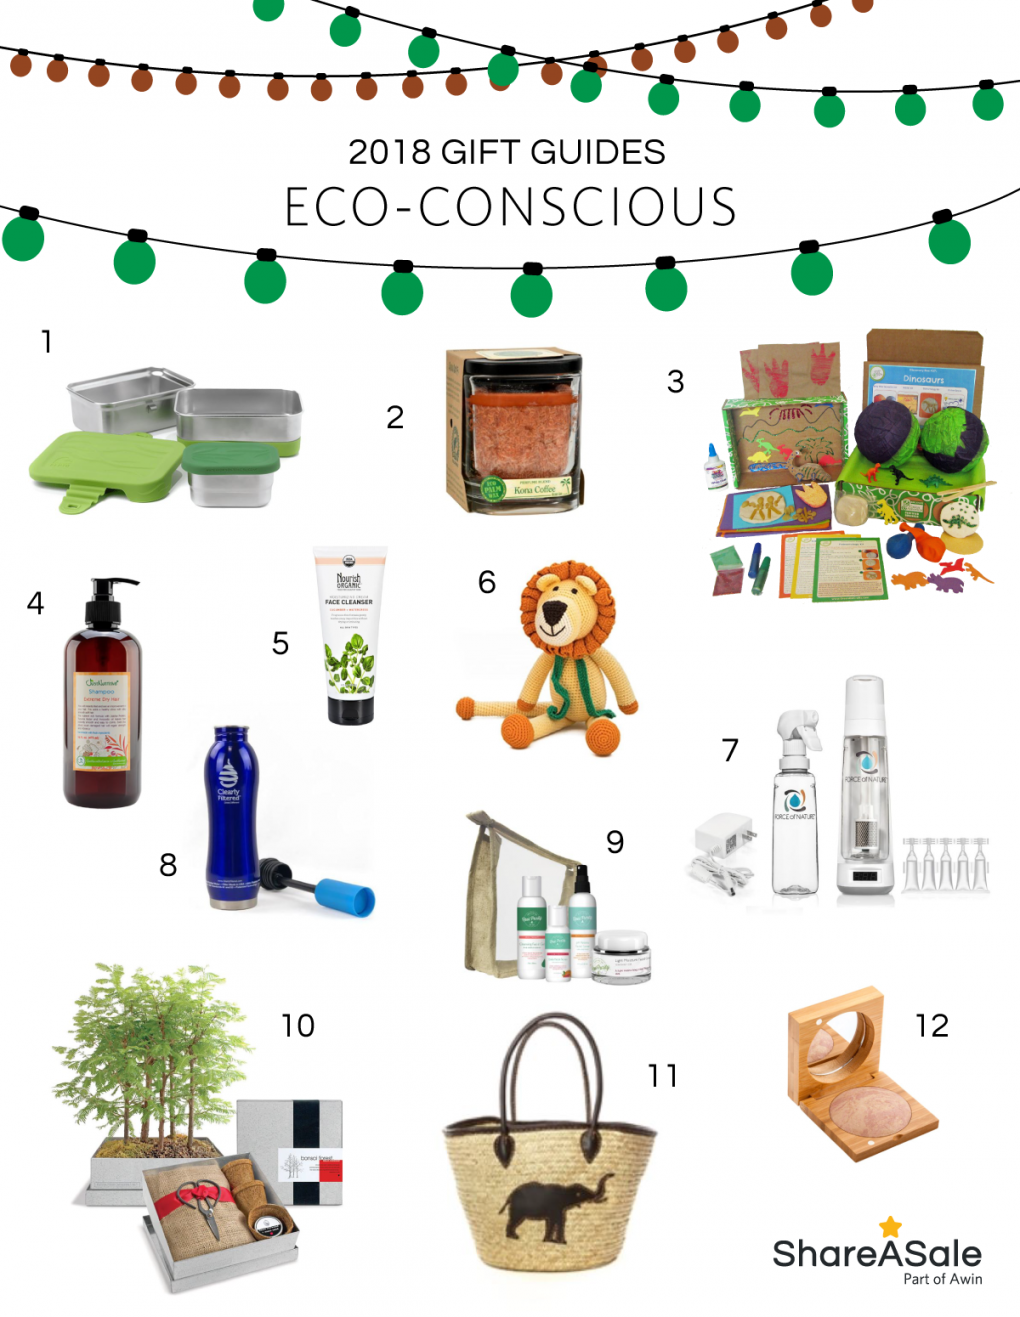 #GiftGuides: Gifts for the Eco-Conscious